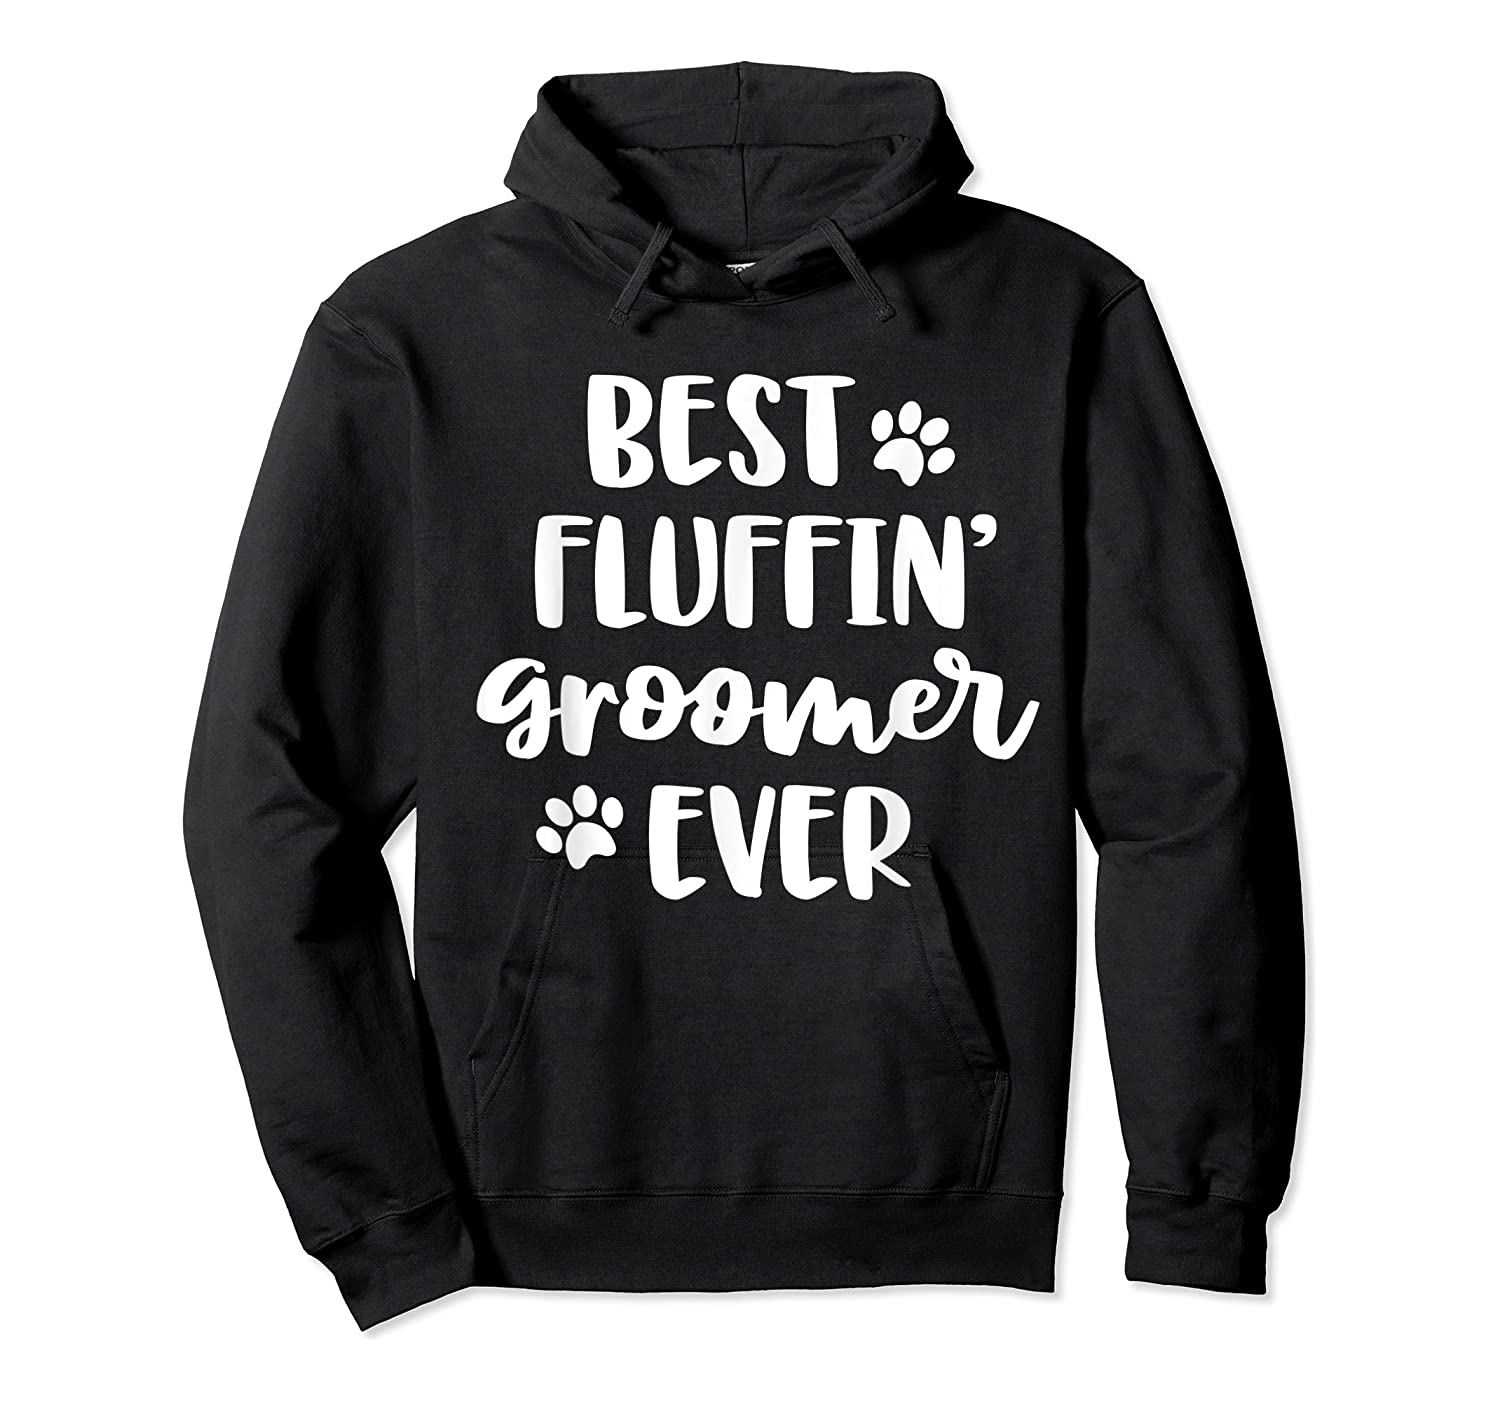 Funny Dog Grooming Gift Best Fluffin' Groomer Ever Shirts Unisex Pullover Hoodie